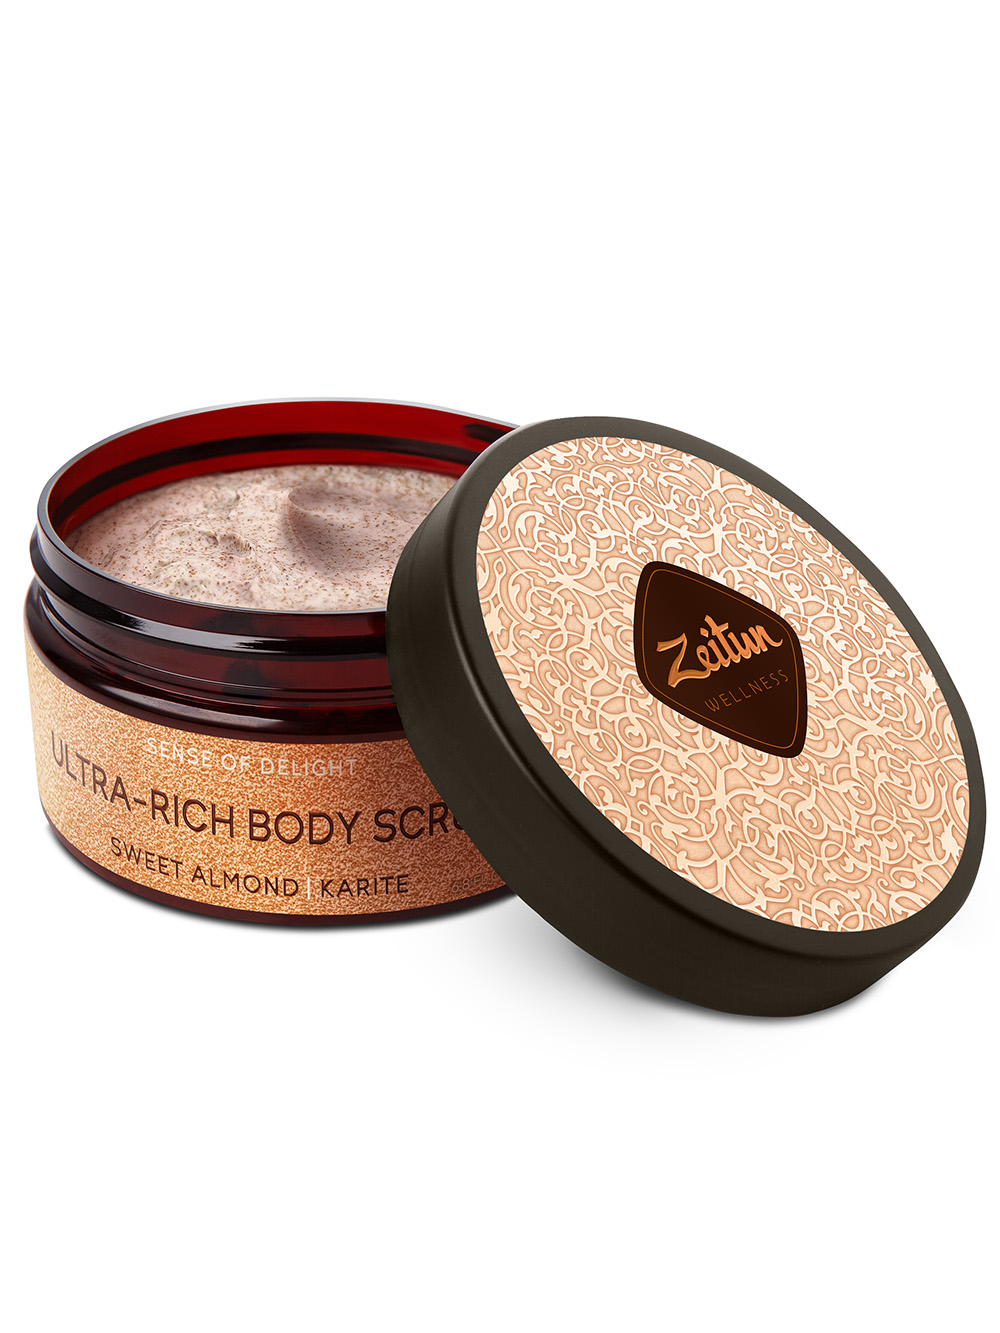 Sense of Delight Ultra-Rich Body Scrub with Sweet Almond and Karite